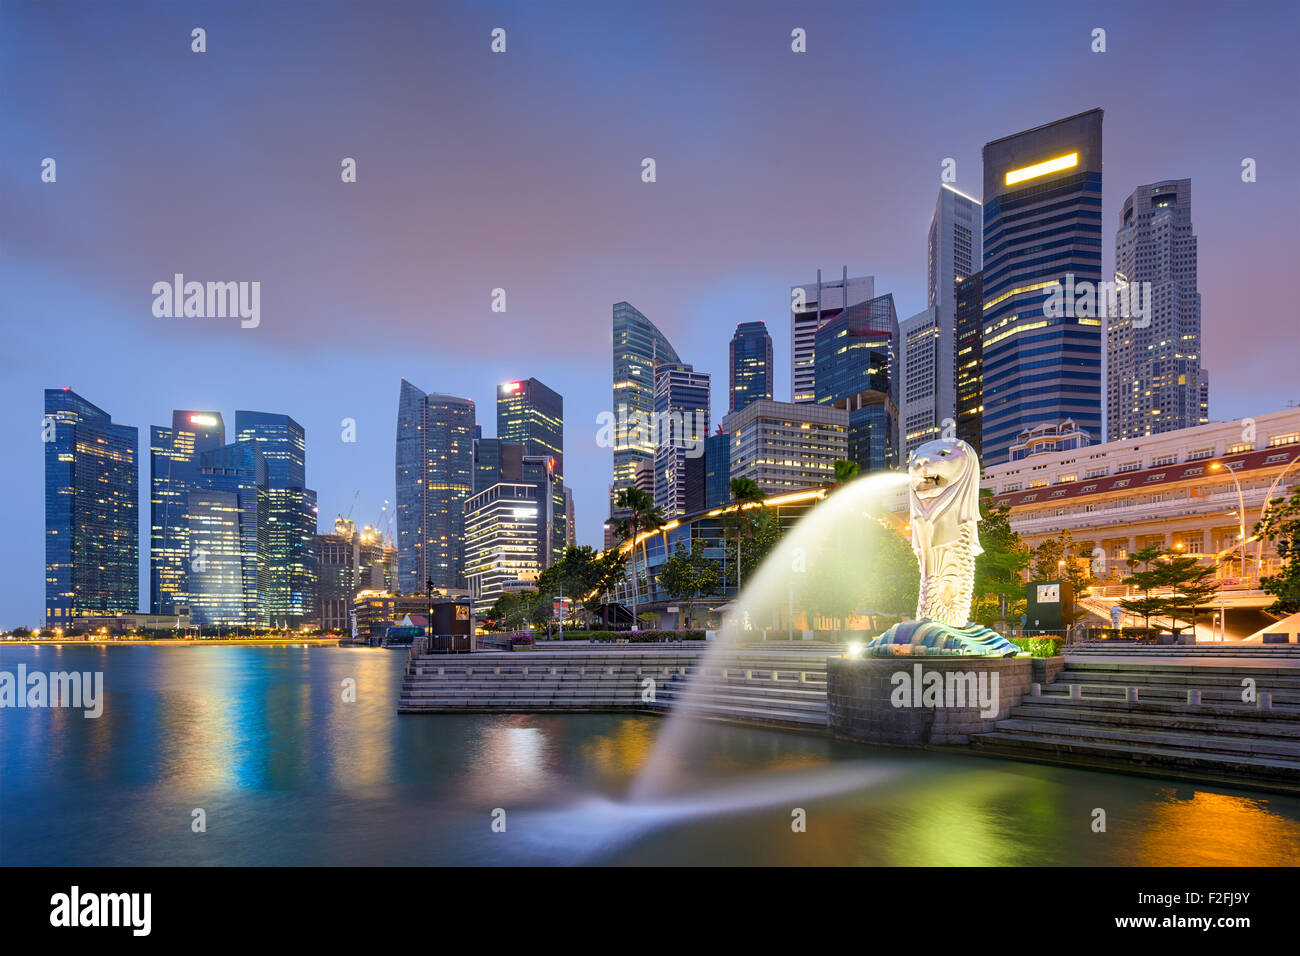 Skyline von Singapur am Brunnen. Stockbild